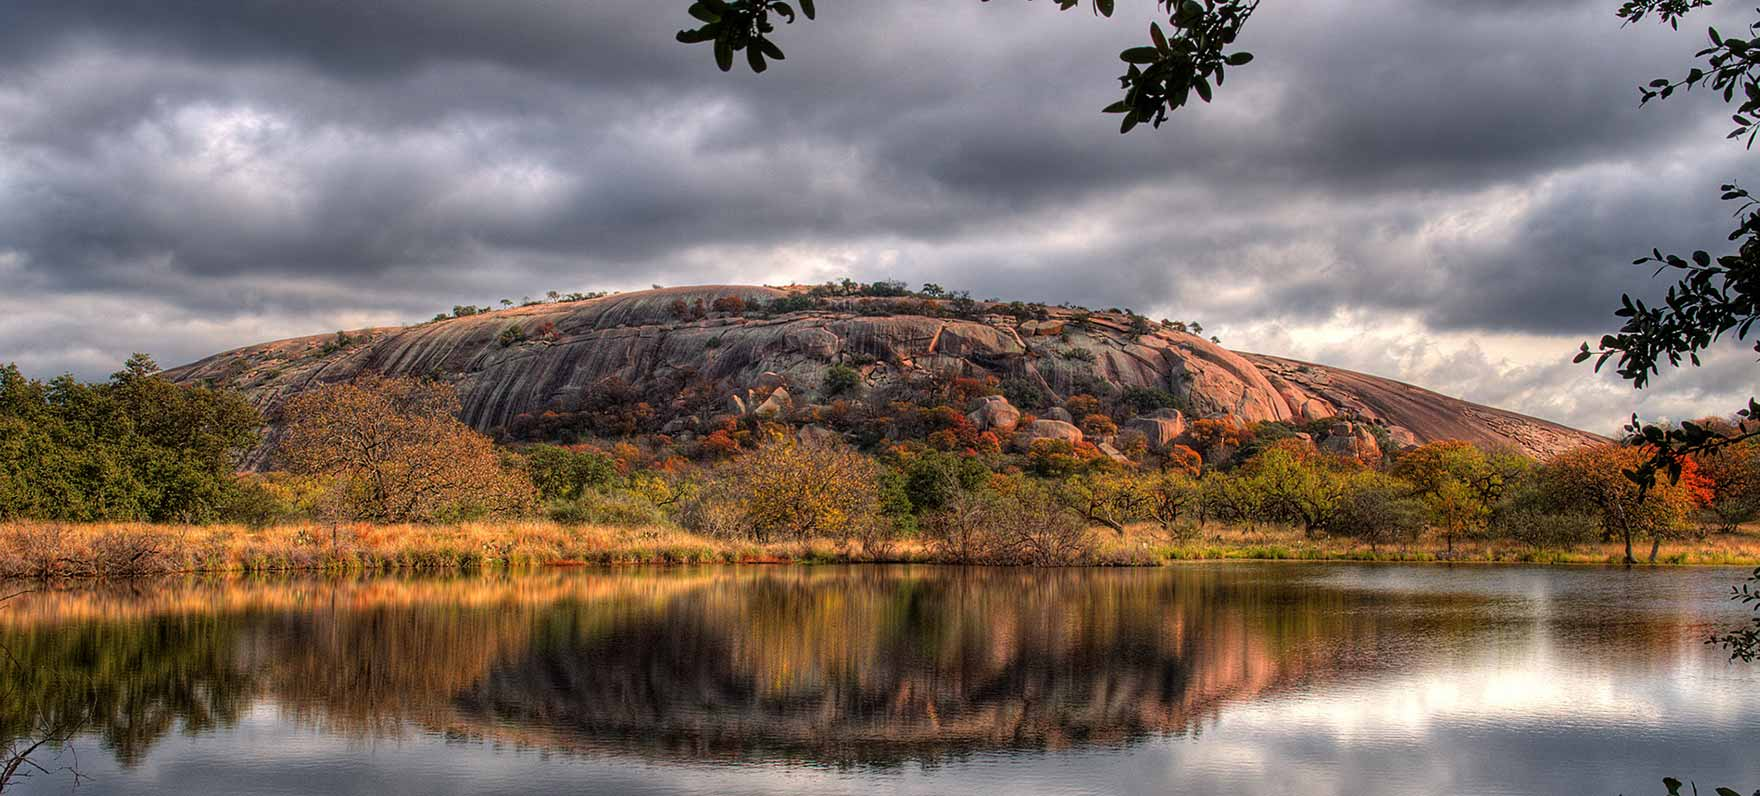 Legend Of The Fall Tour Wallpaper Enchanted Rock State Natural Area Texas Parks Amp Wildlife